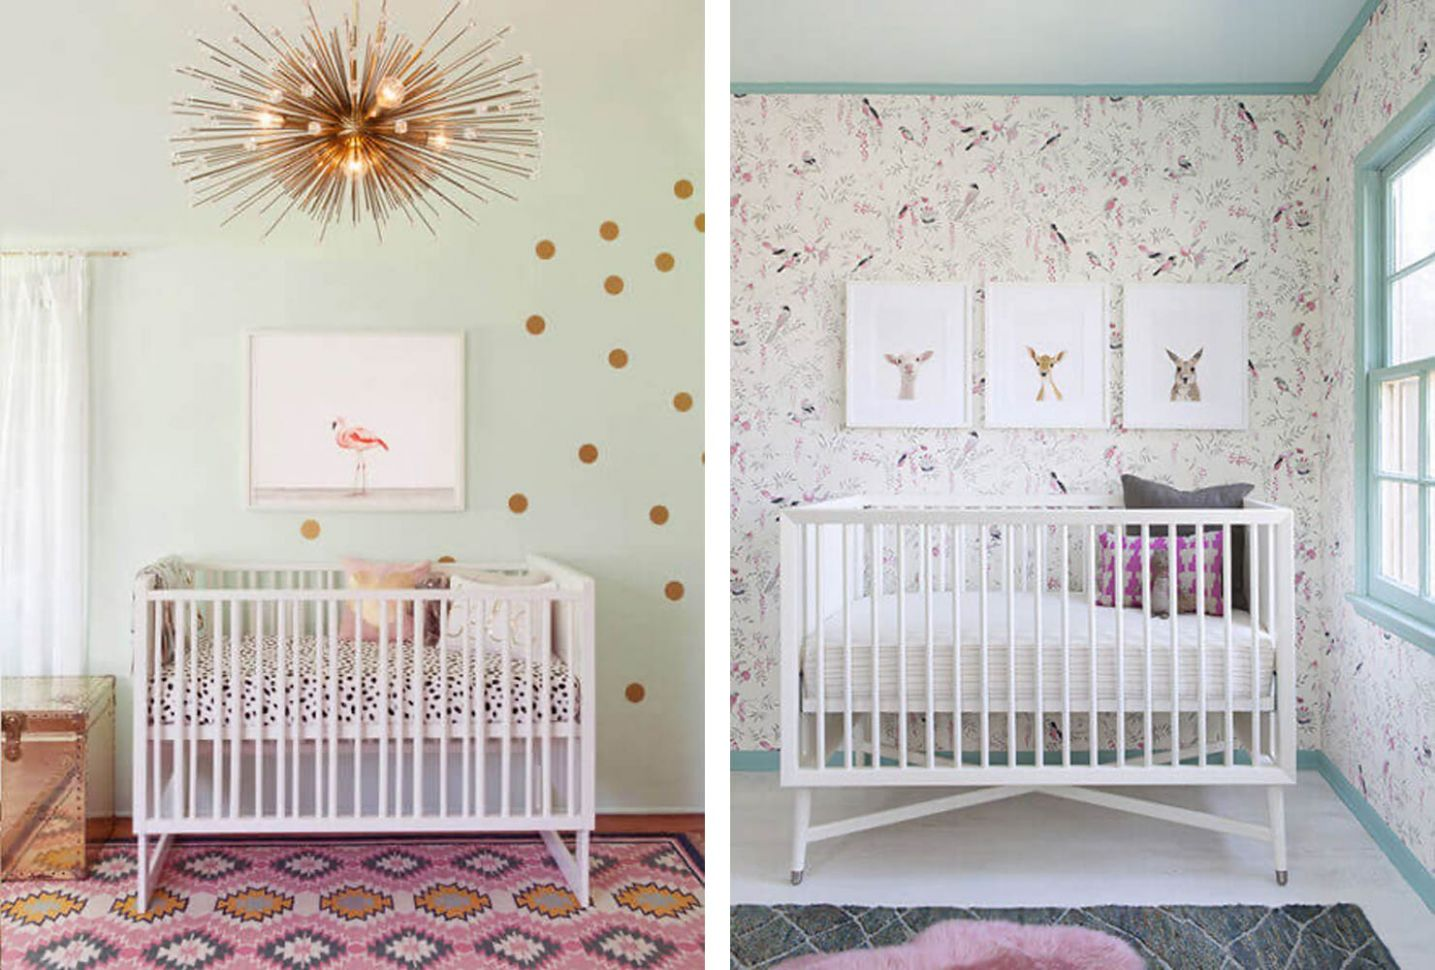 8+ Adorable Baby Girl Room Ideas | Shutterfly - baby room decor girl